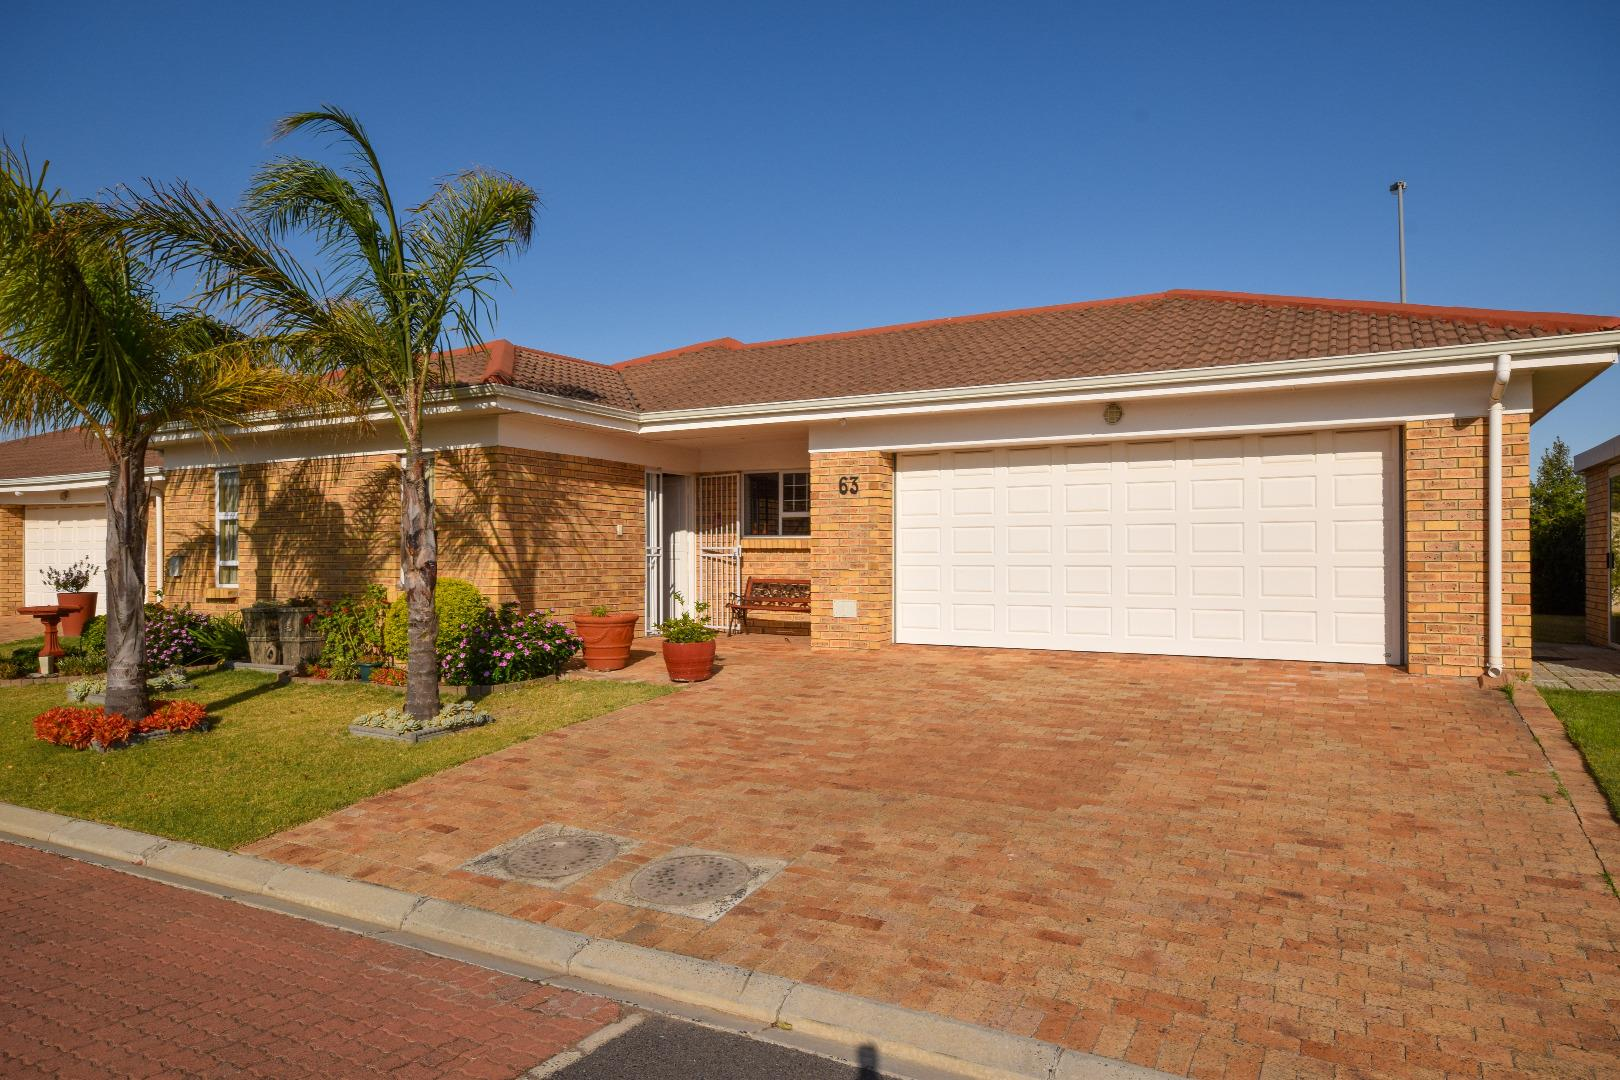 2 Bedroom Retirement Village for Sale in Sonstraal Heights, Durbanville - Western Cape